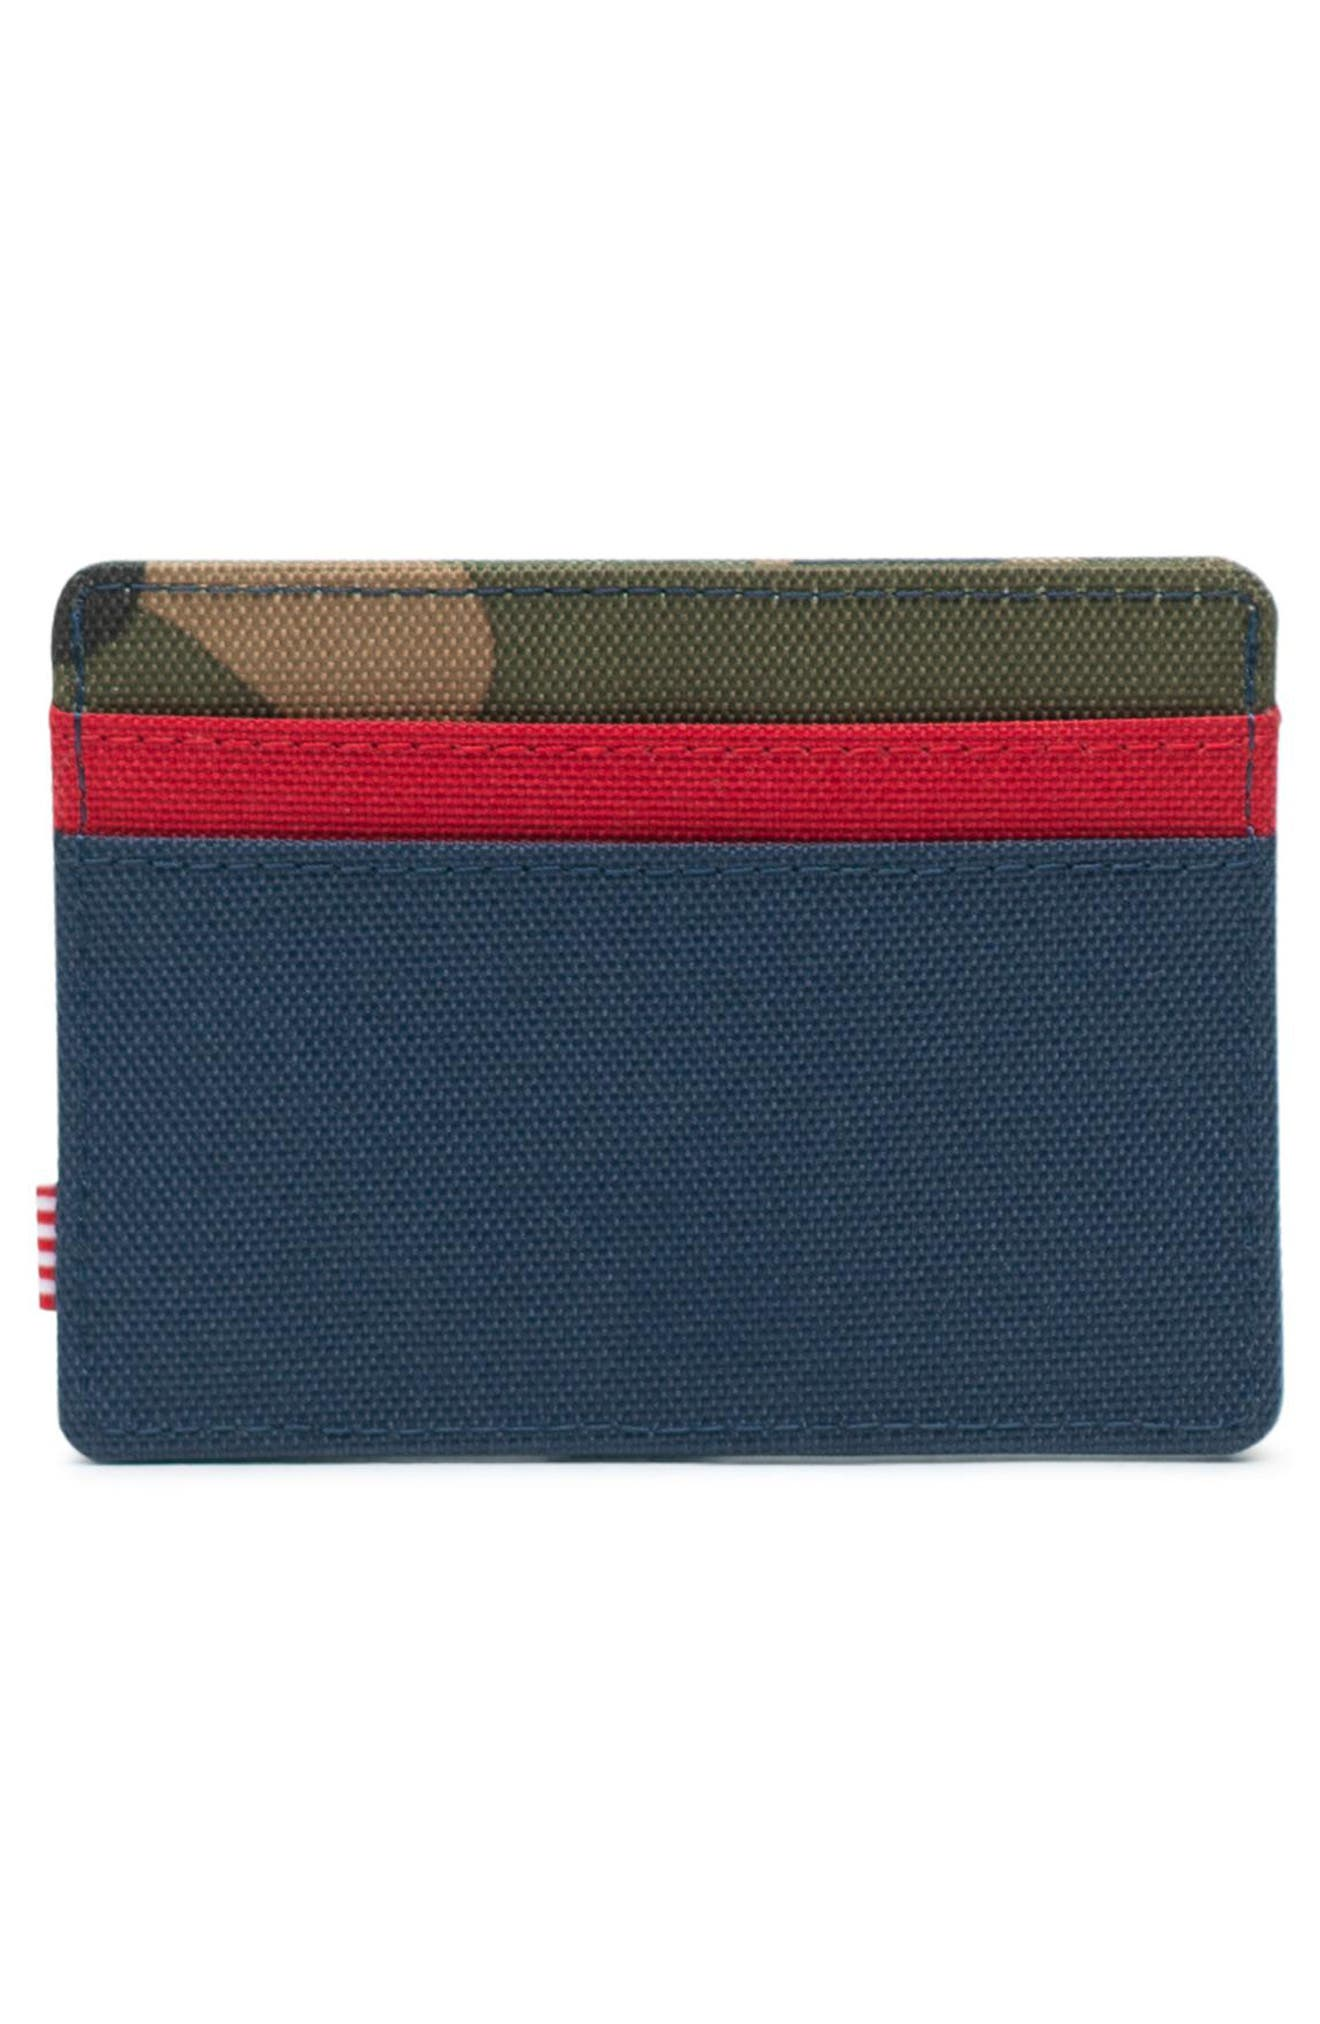 HERSCHEL SUPPLY CO., Charlie RFID Card Case, Alternate thumbnail 2, color, NAVY/ RED/ CAMO